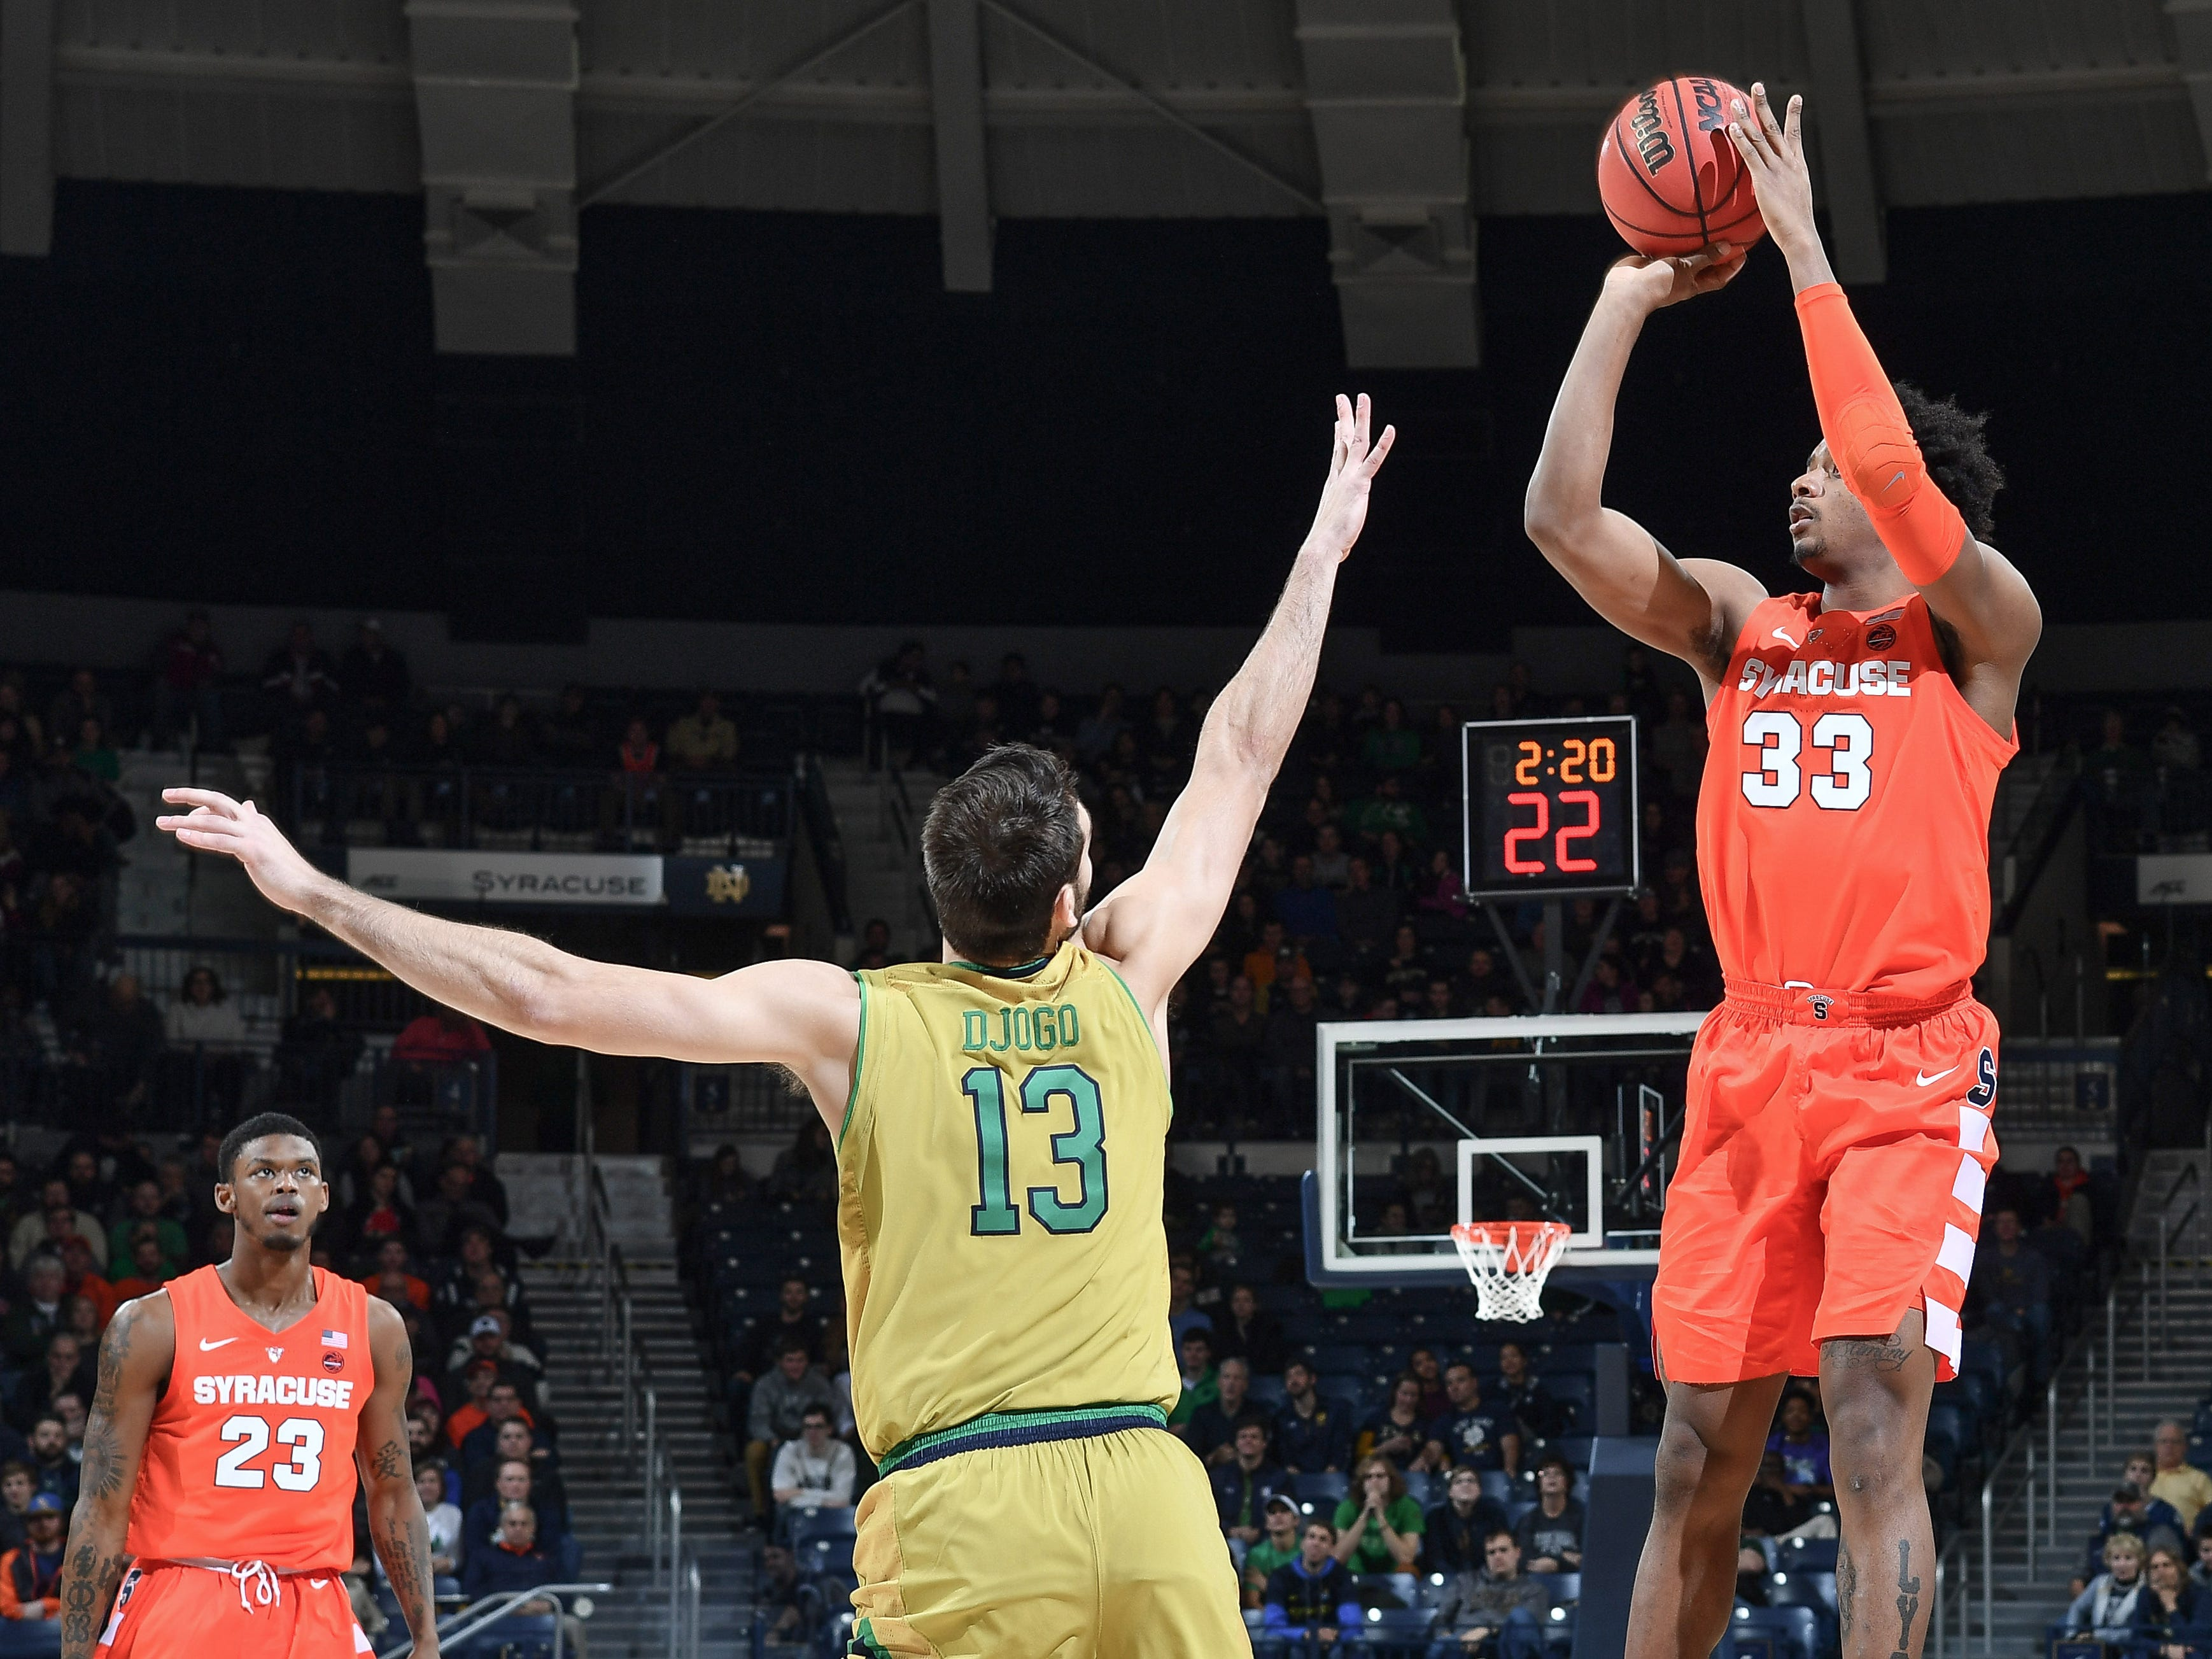 Roth: In NCAAs or not, Syracuse needs to find its game before it's too late